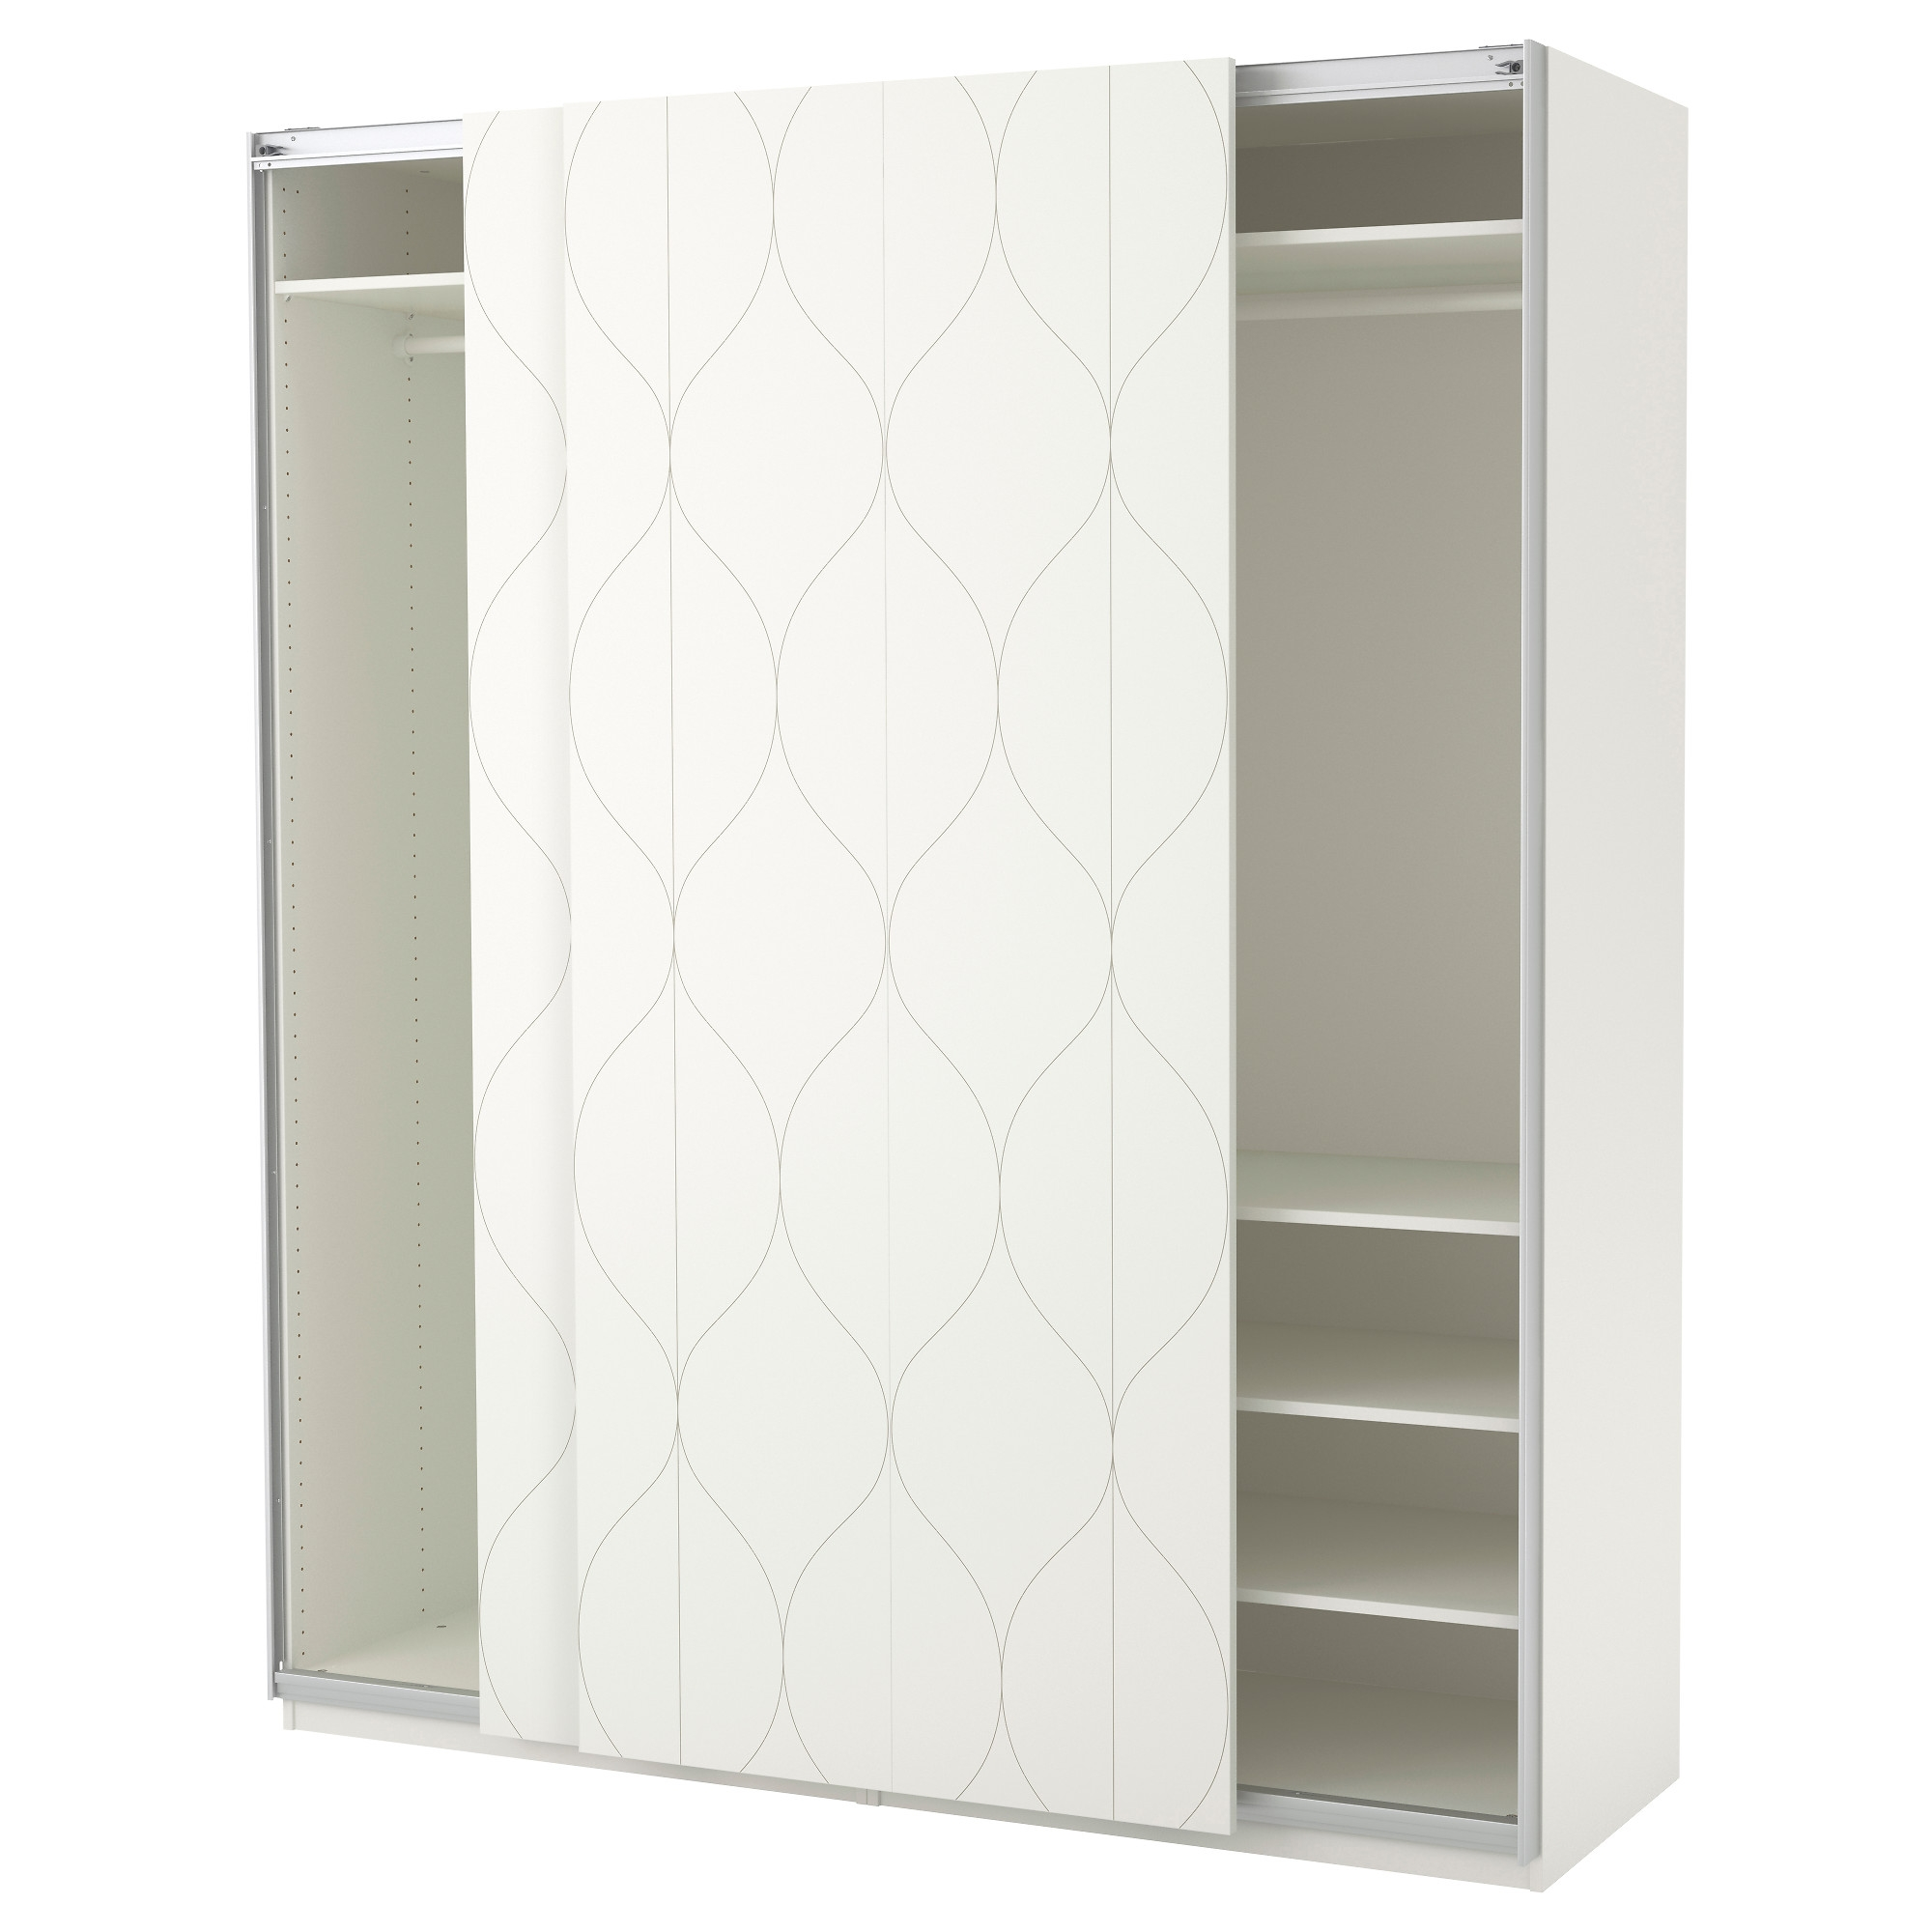 Pax System Combinations With Doors Ikea With Fitted Wardrobe Depth (View 7 of 15)